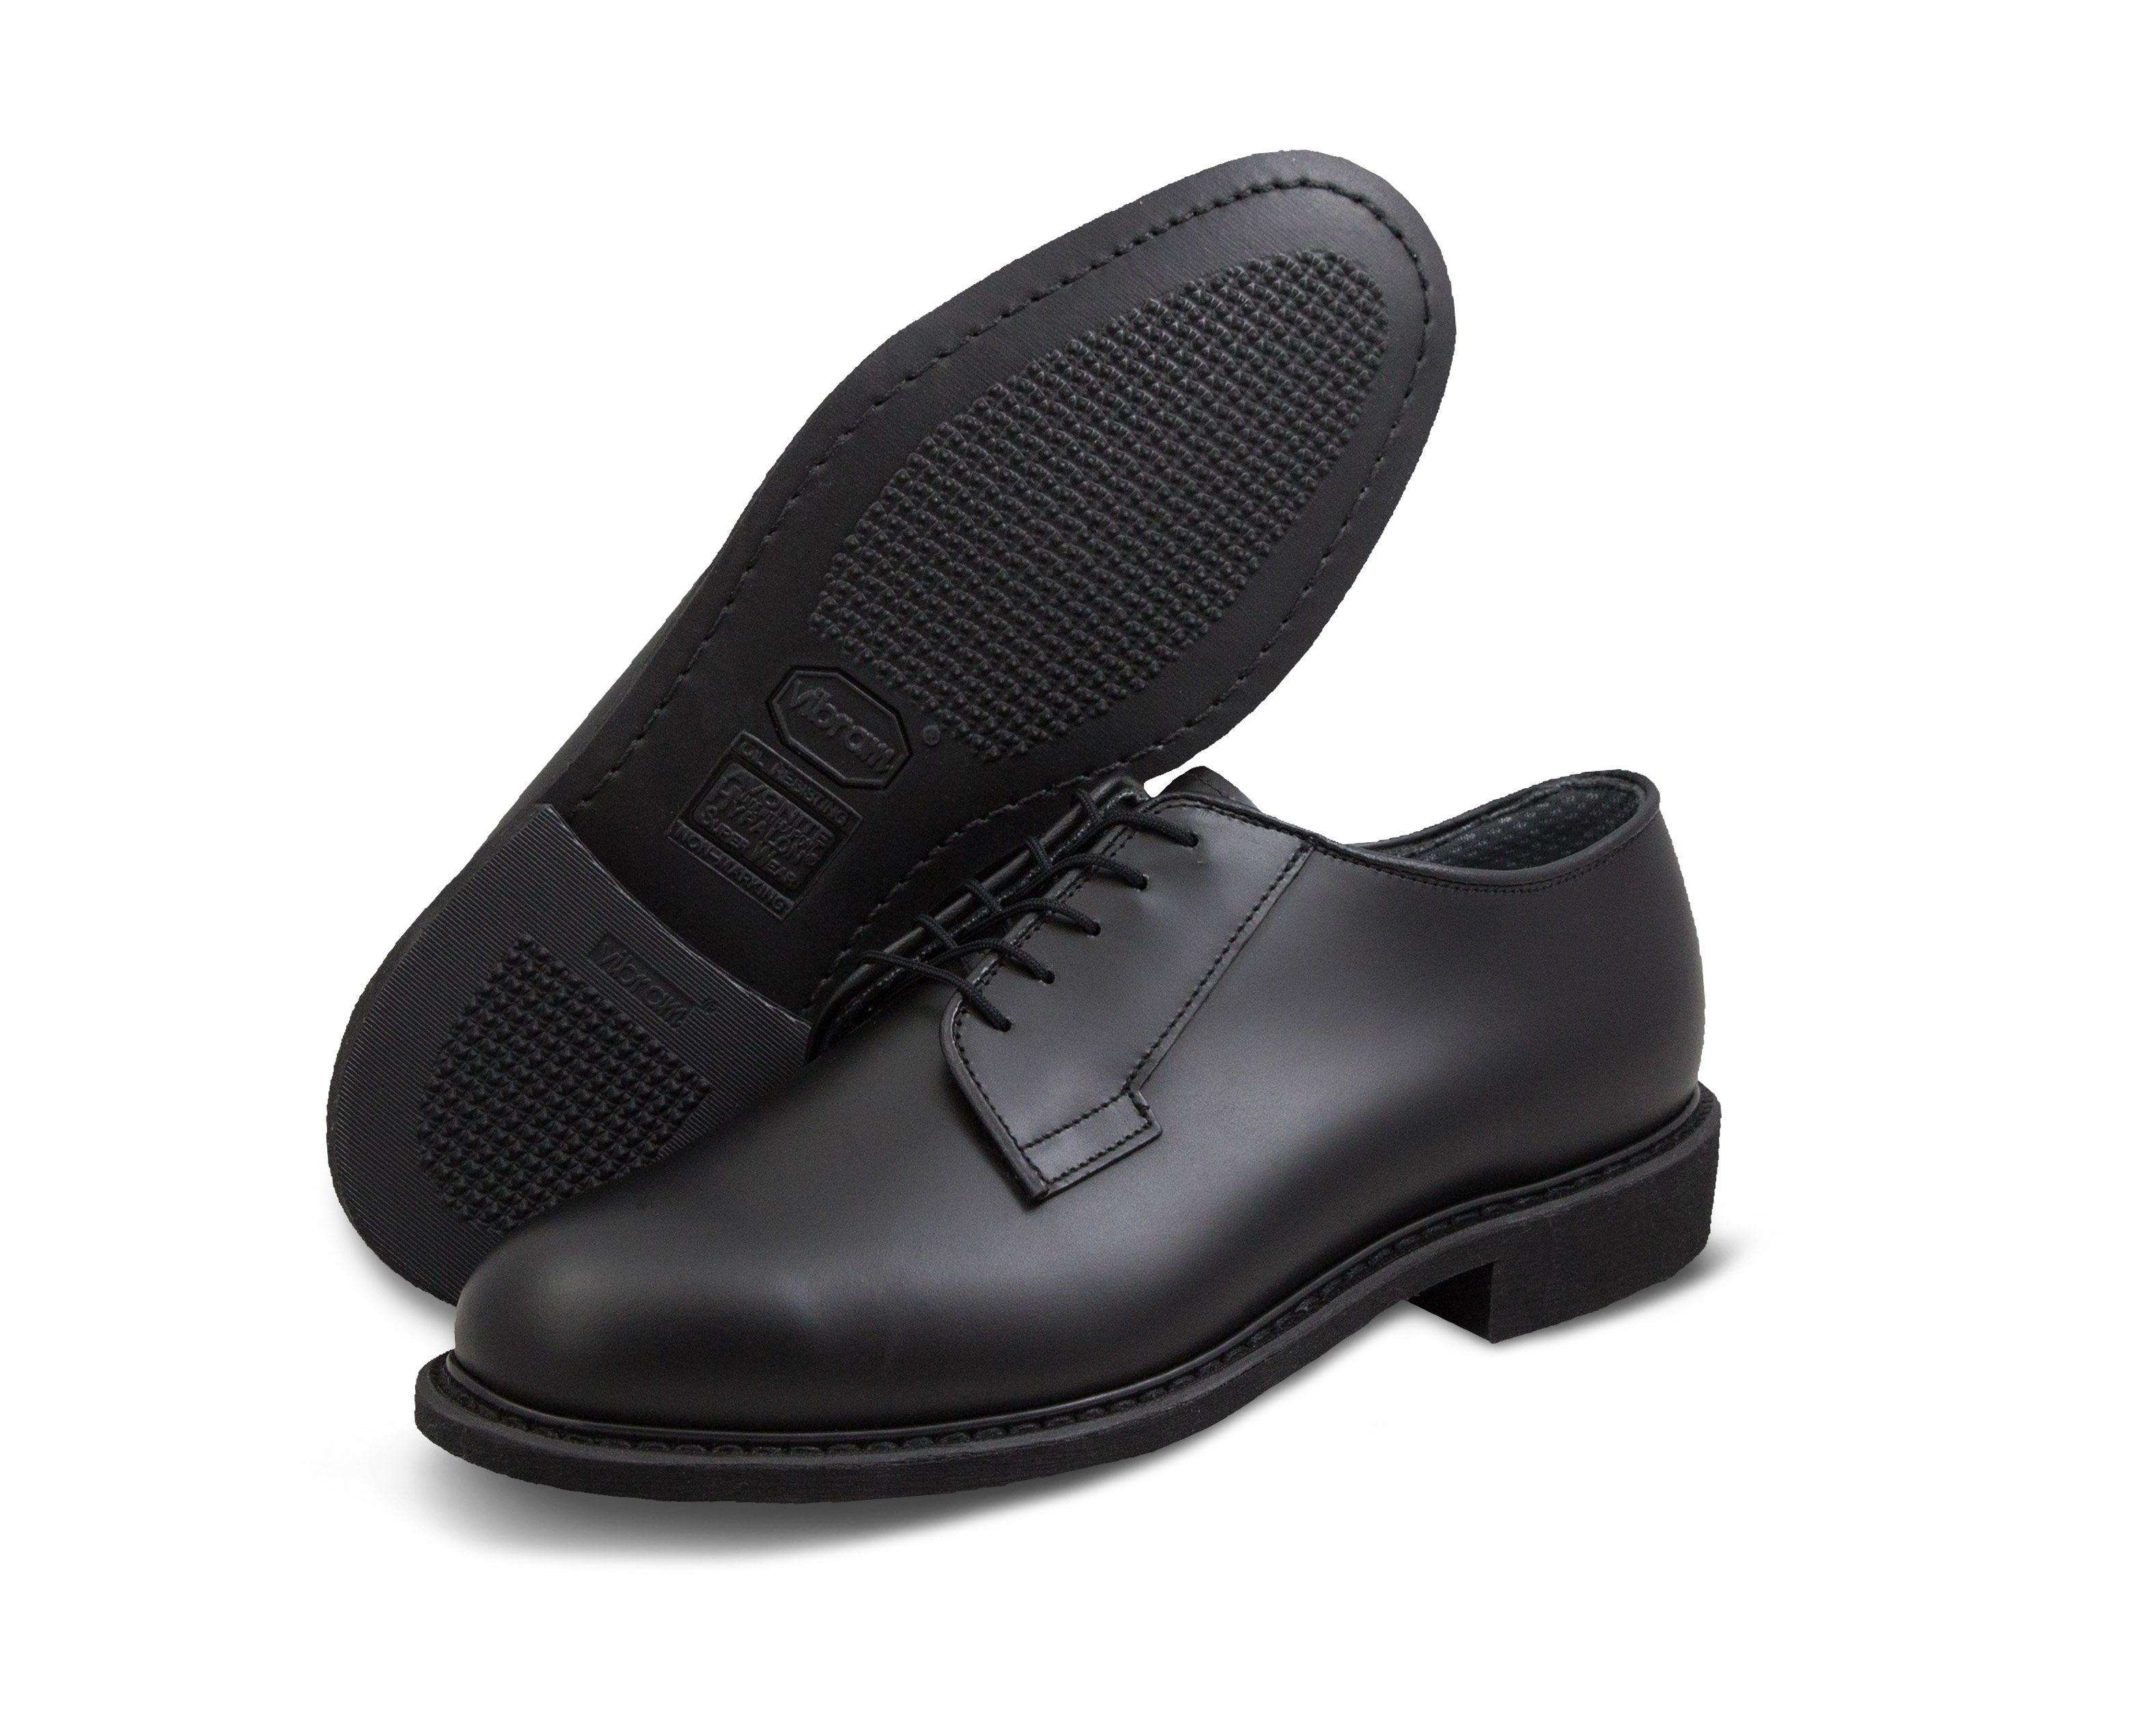 Altama Police Shoes - Uniform Oxford